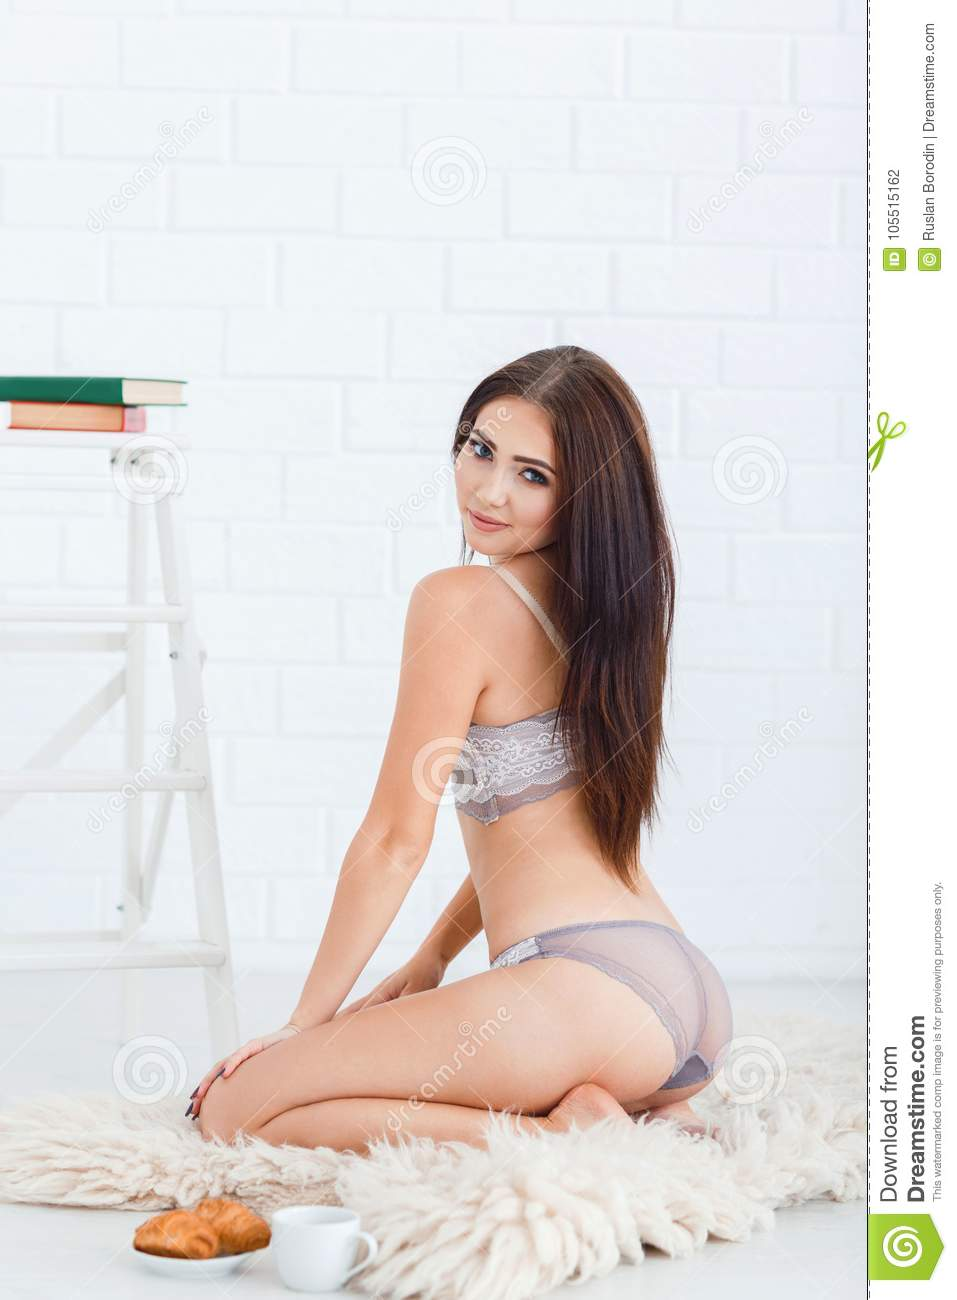 variant of the porn adware removal